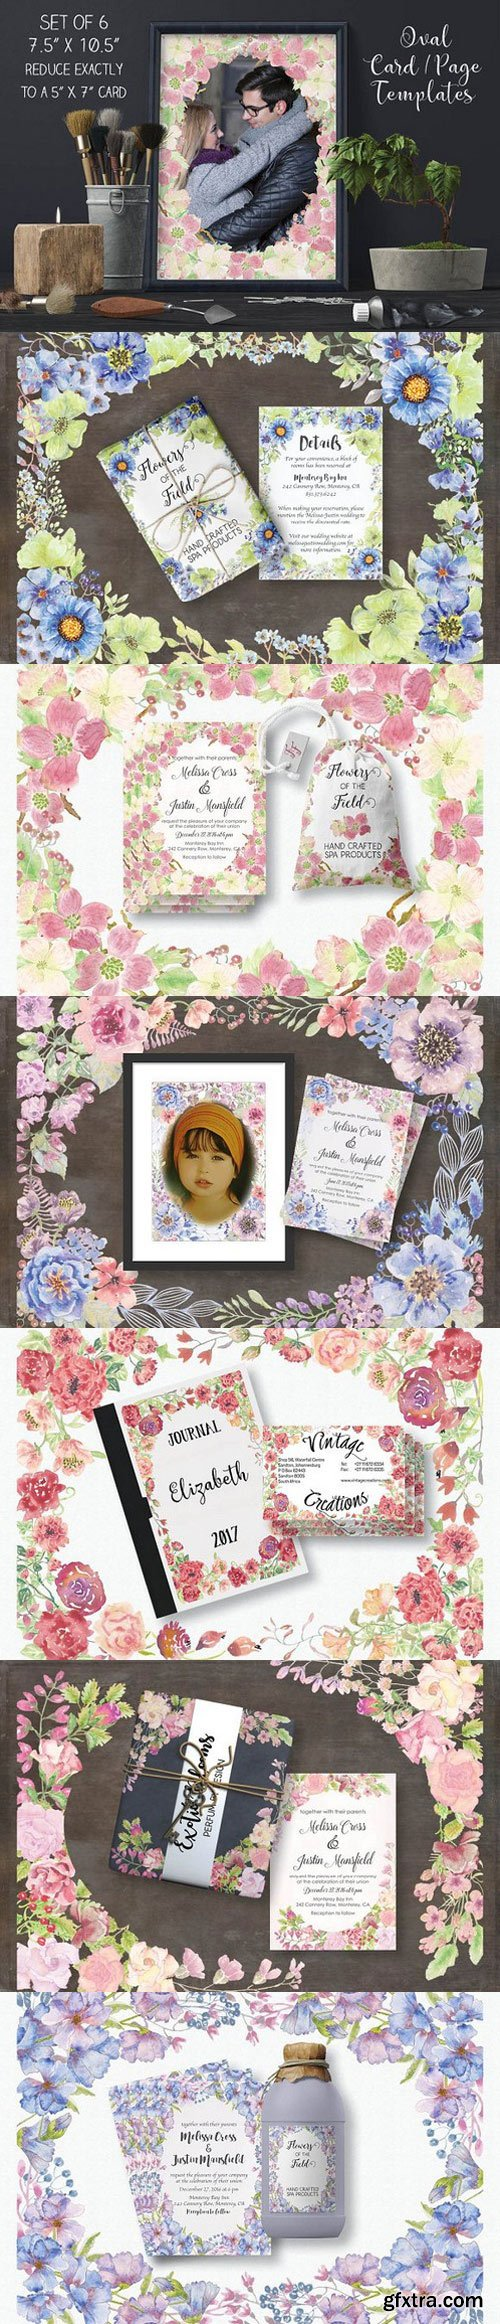 CM - Set of 6 oval card templates 1343387